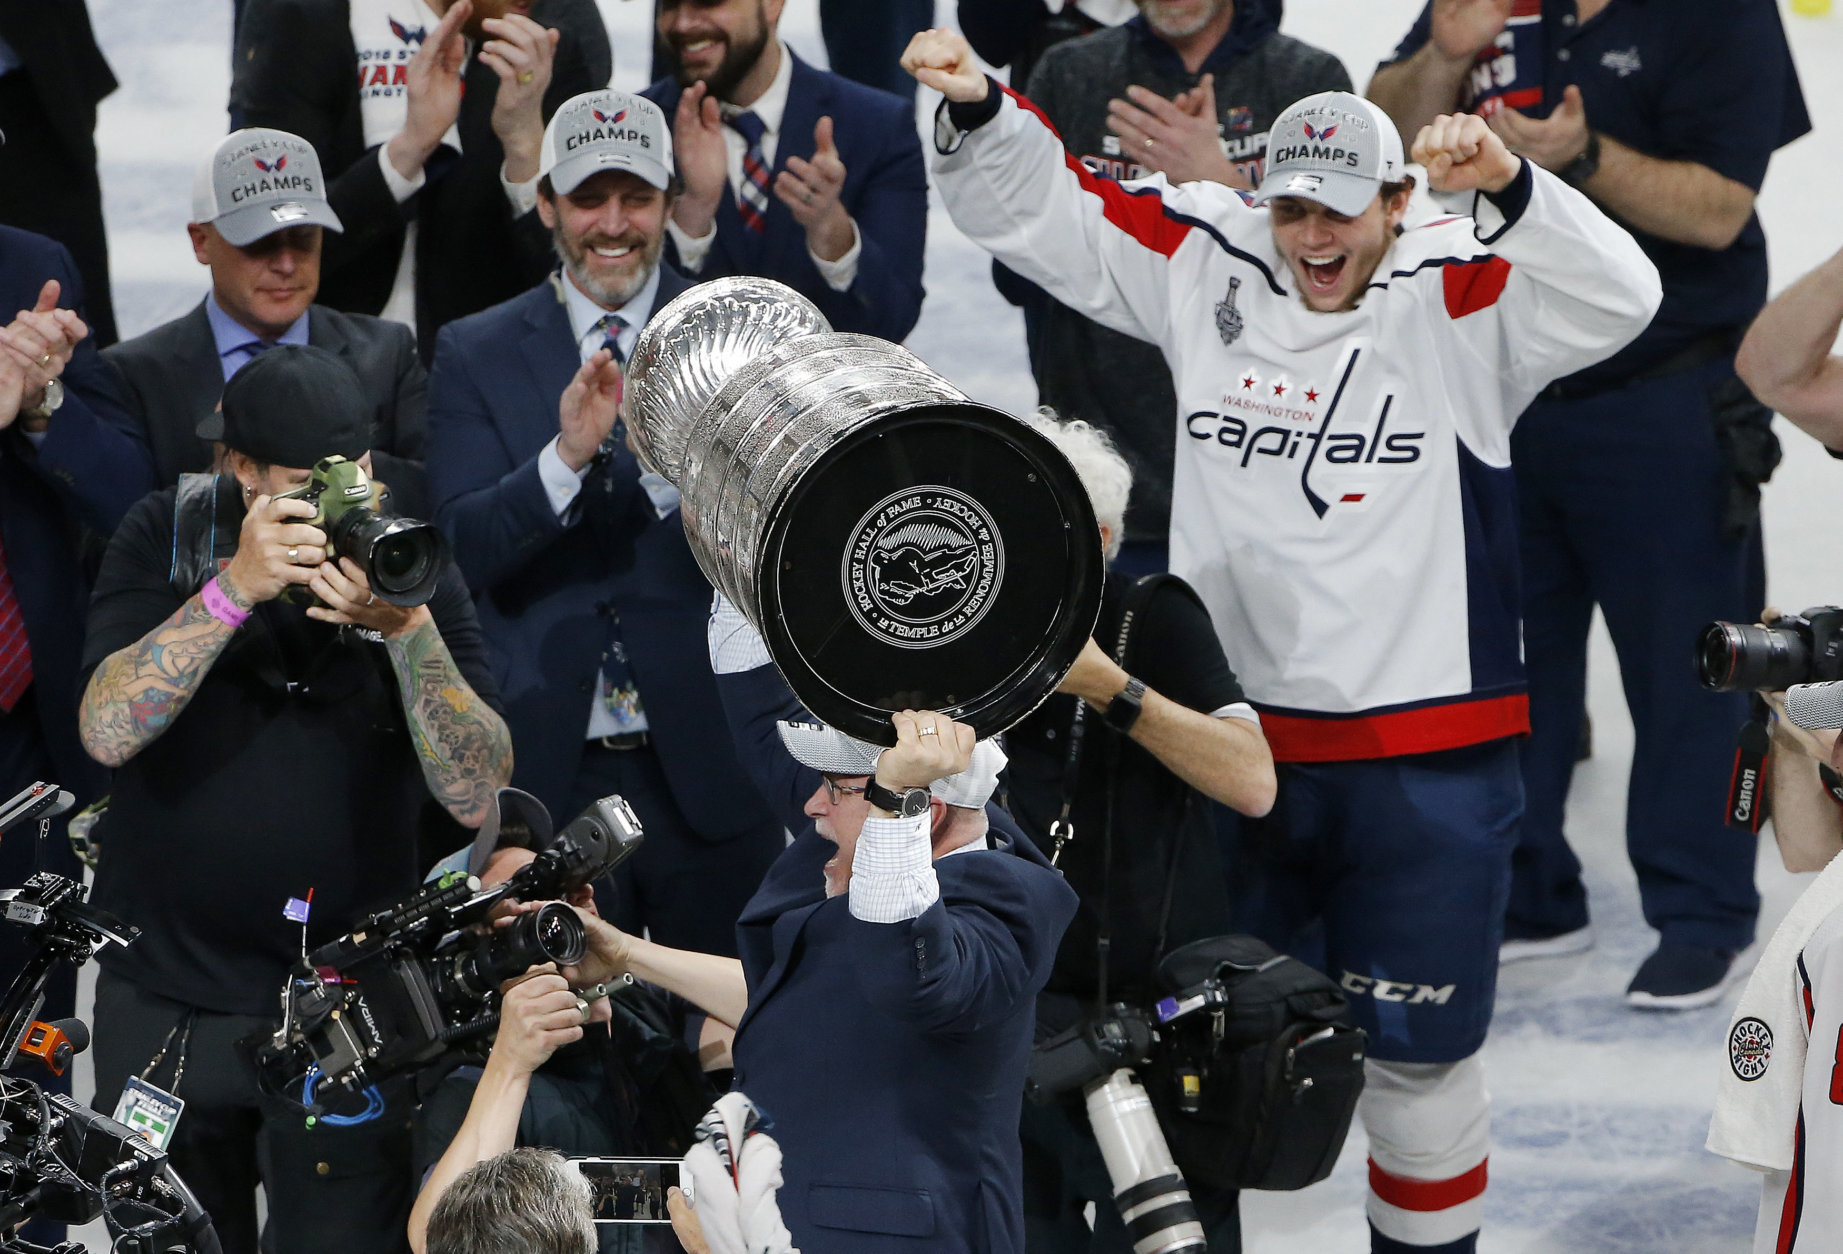 Washington Capitals head coach Barry Trotz holds up the Stanley Cup after the Capitals defeated the Vegas Golden Knights in Game 5 of the NHL hockey Stanley Cup Finals Thursday, June 7, 2018, in Las Vegas. (AP Photo/Ross D. Franklin)